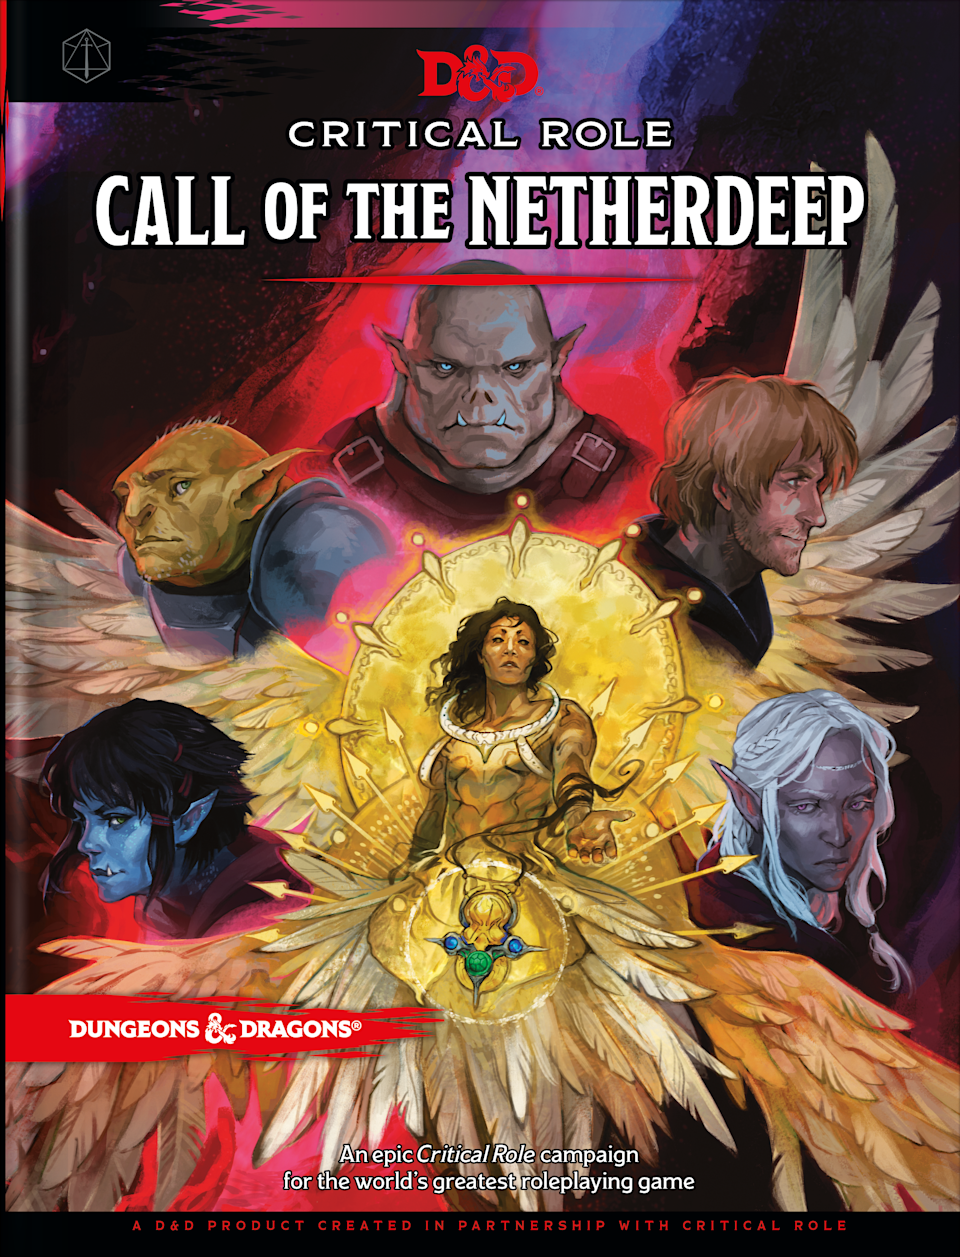 Wizards of the Coast - D&D Crtical Role - Call of the Netherdeep - Cover